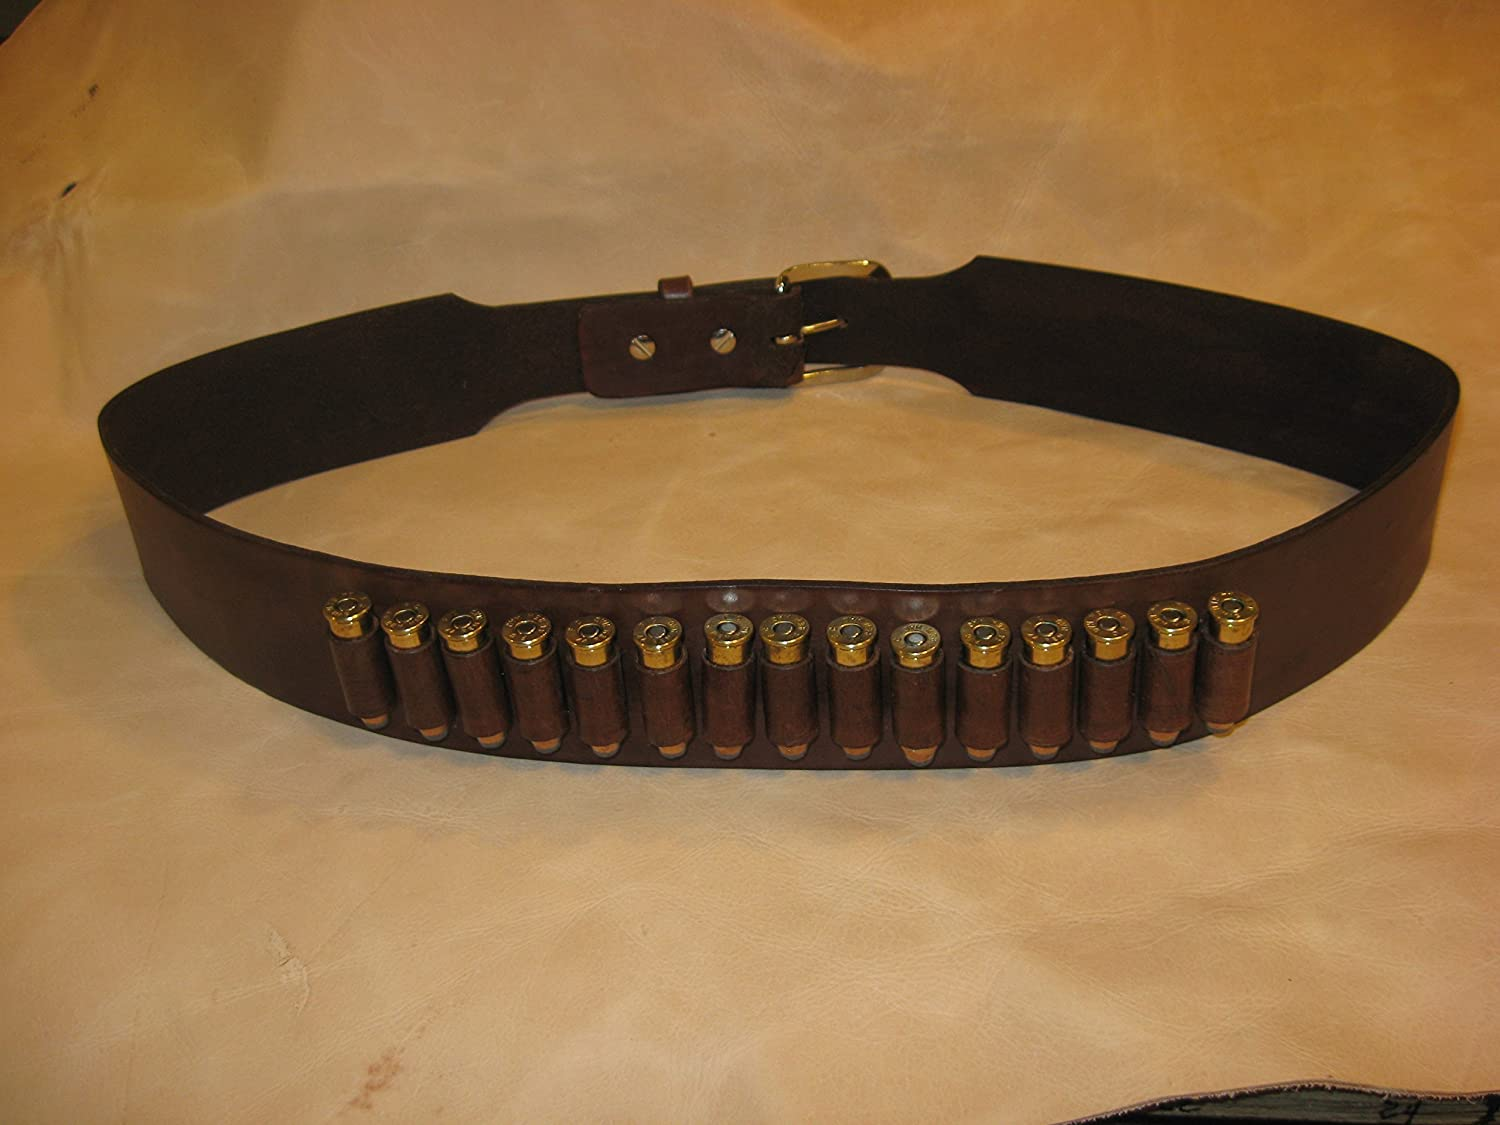 Western Leather Gun Belt with Cartridge Loops Cowboy Gun Slinger Style